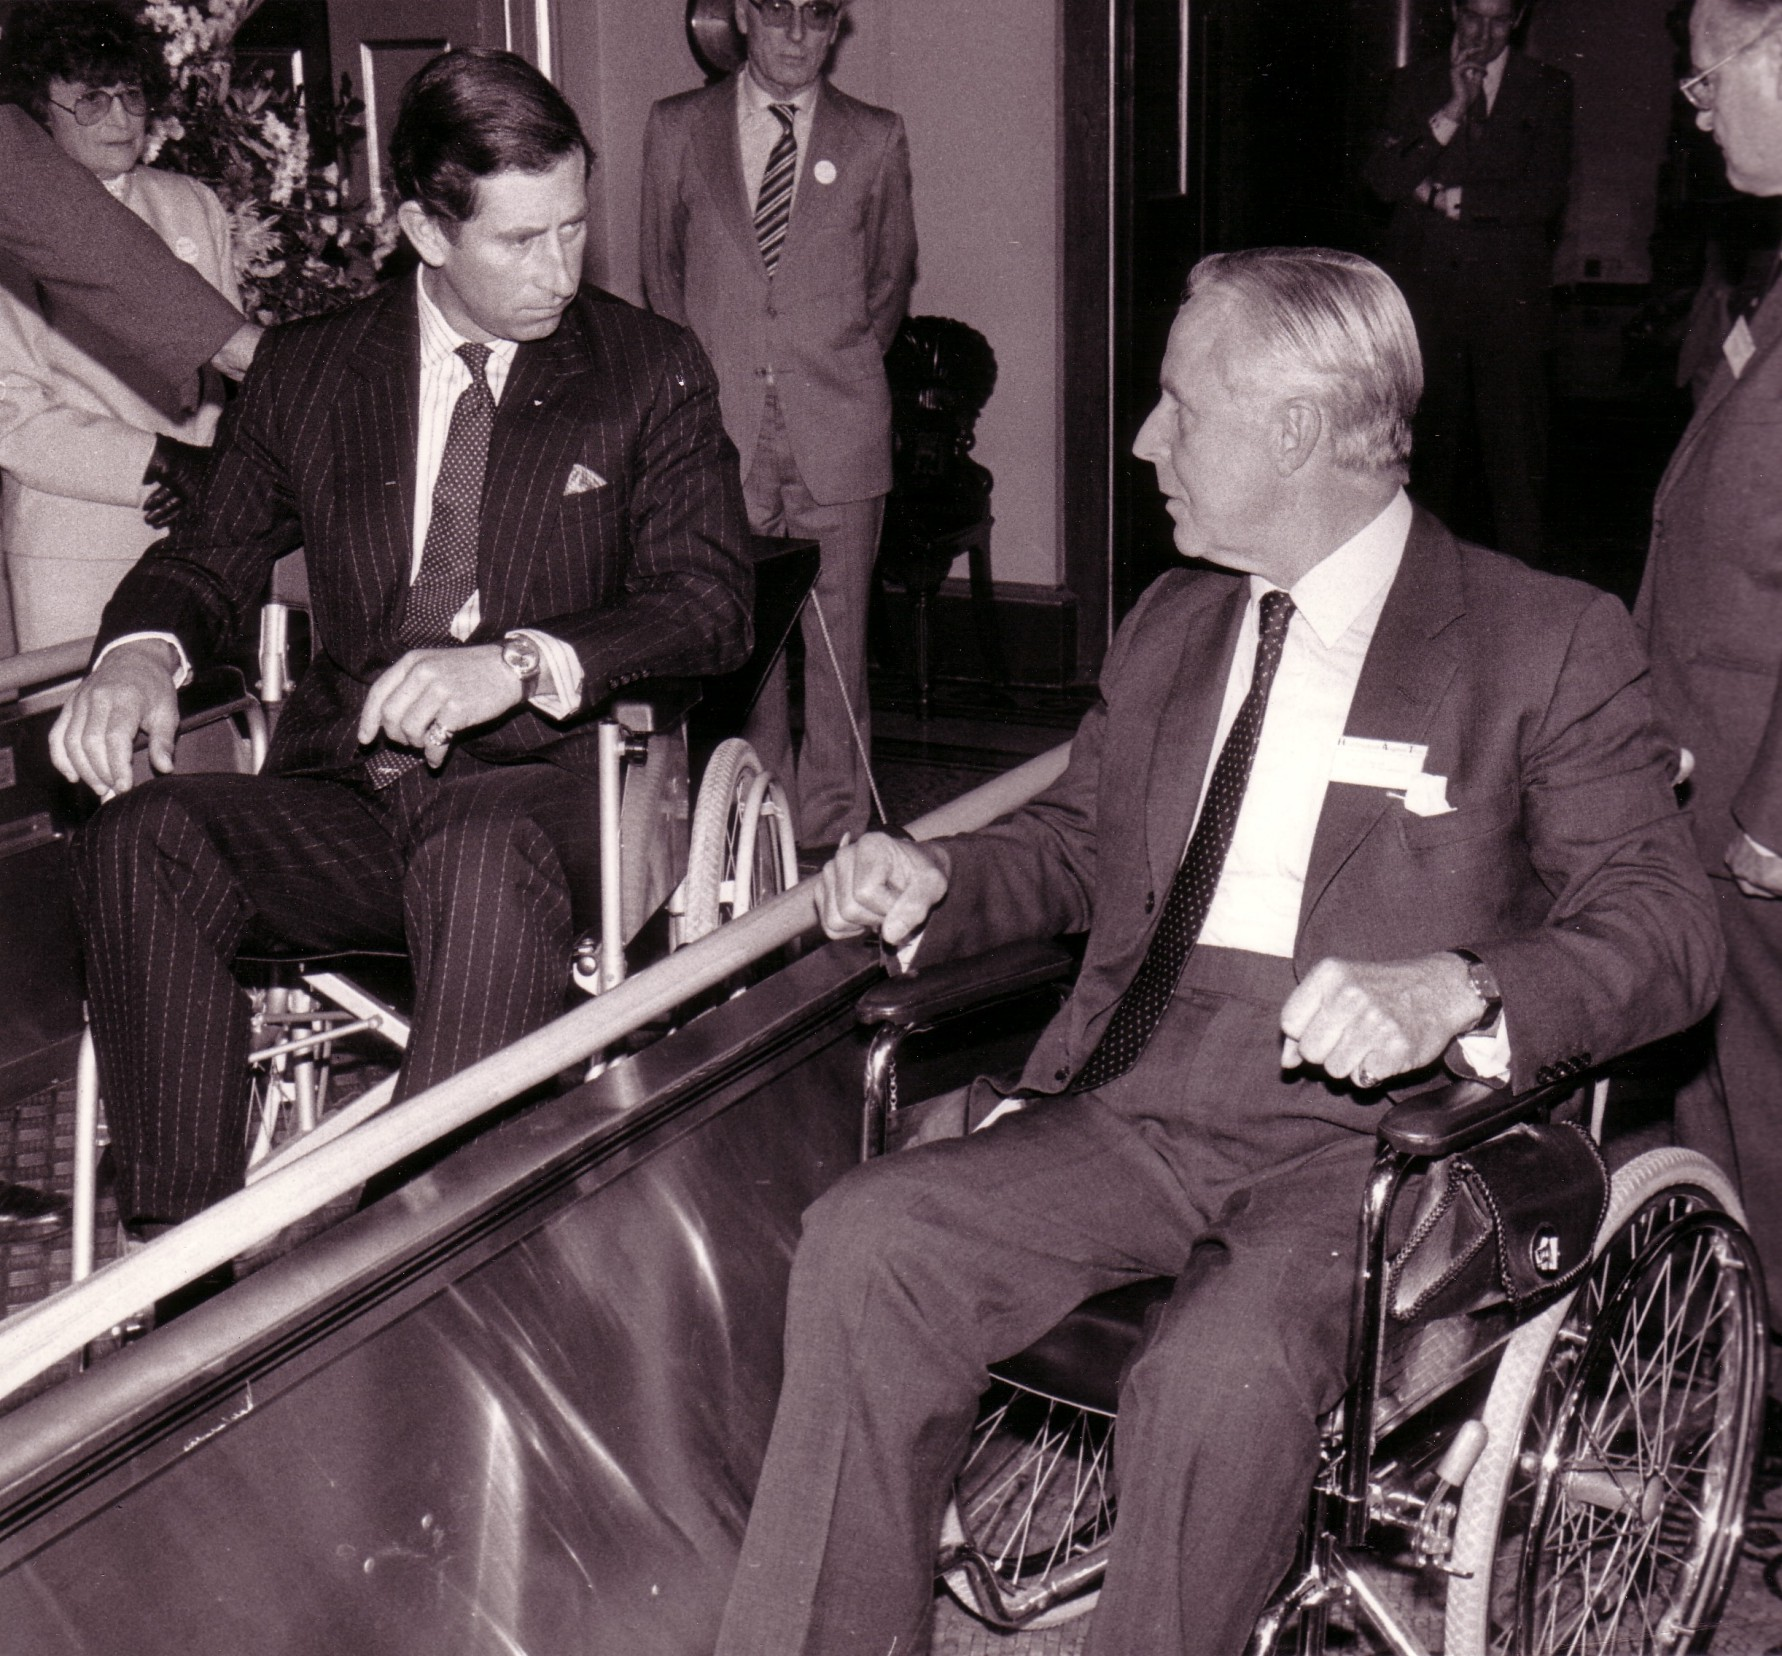 HRH Prince Charles and founding Trustee, Bill Buchanan, at our official launch at Fishmongers' Hall in 1985.